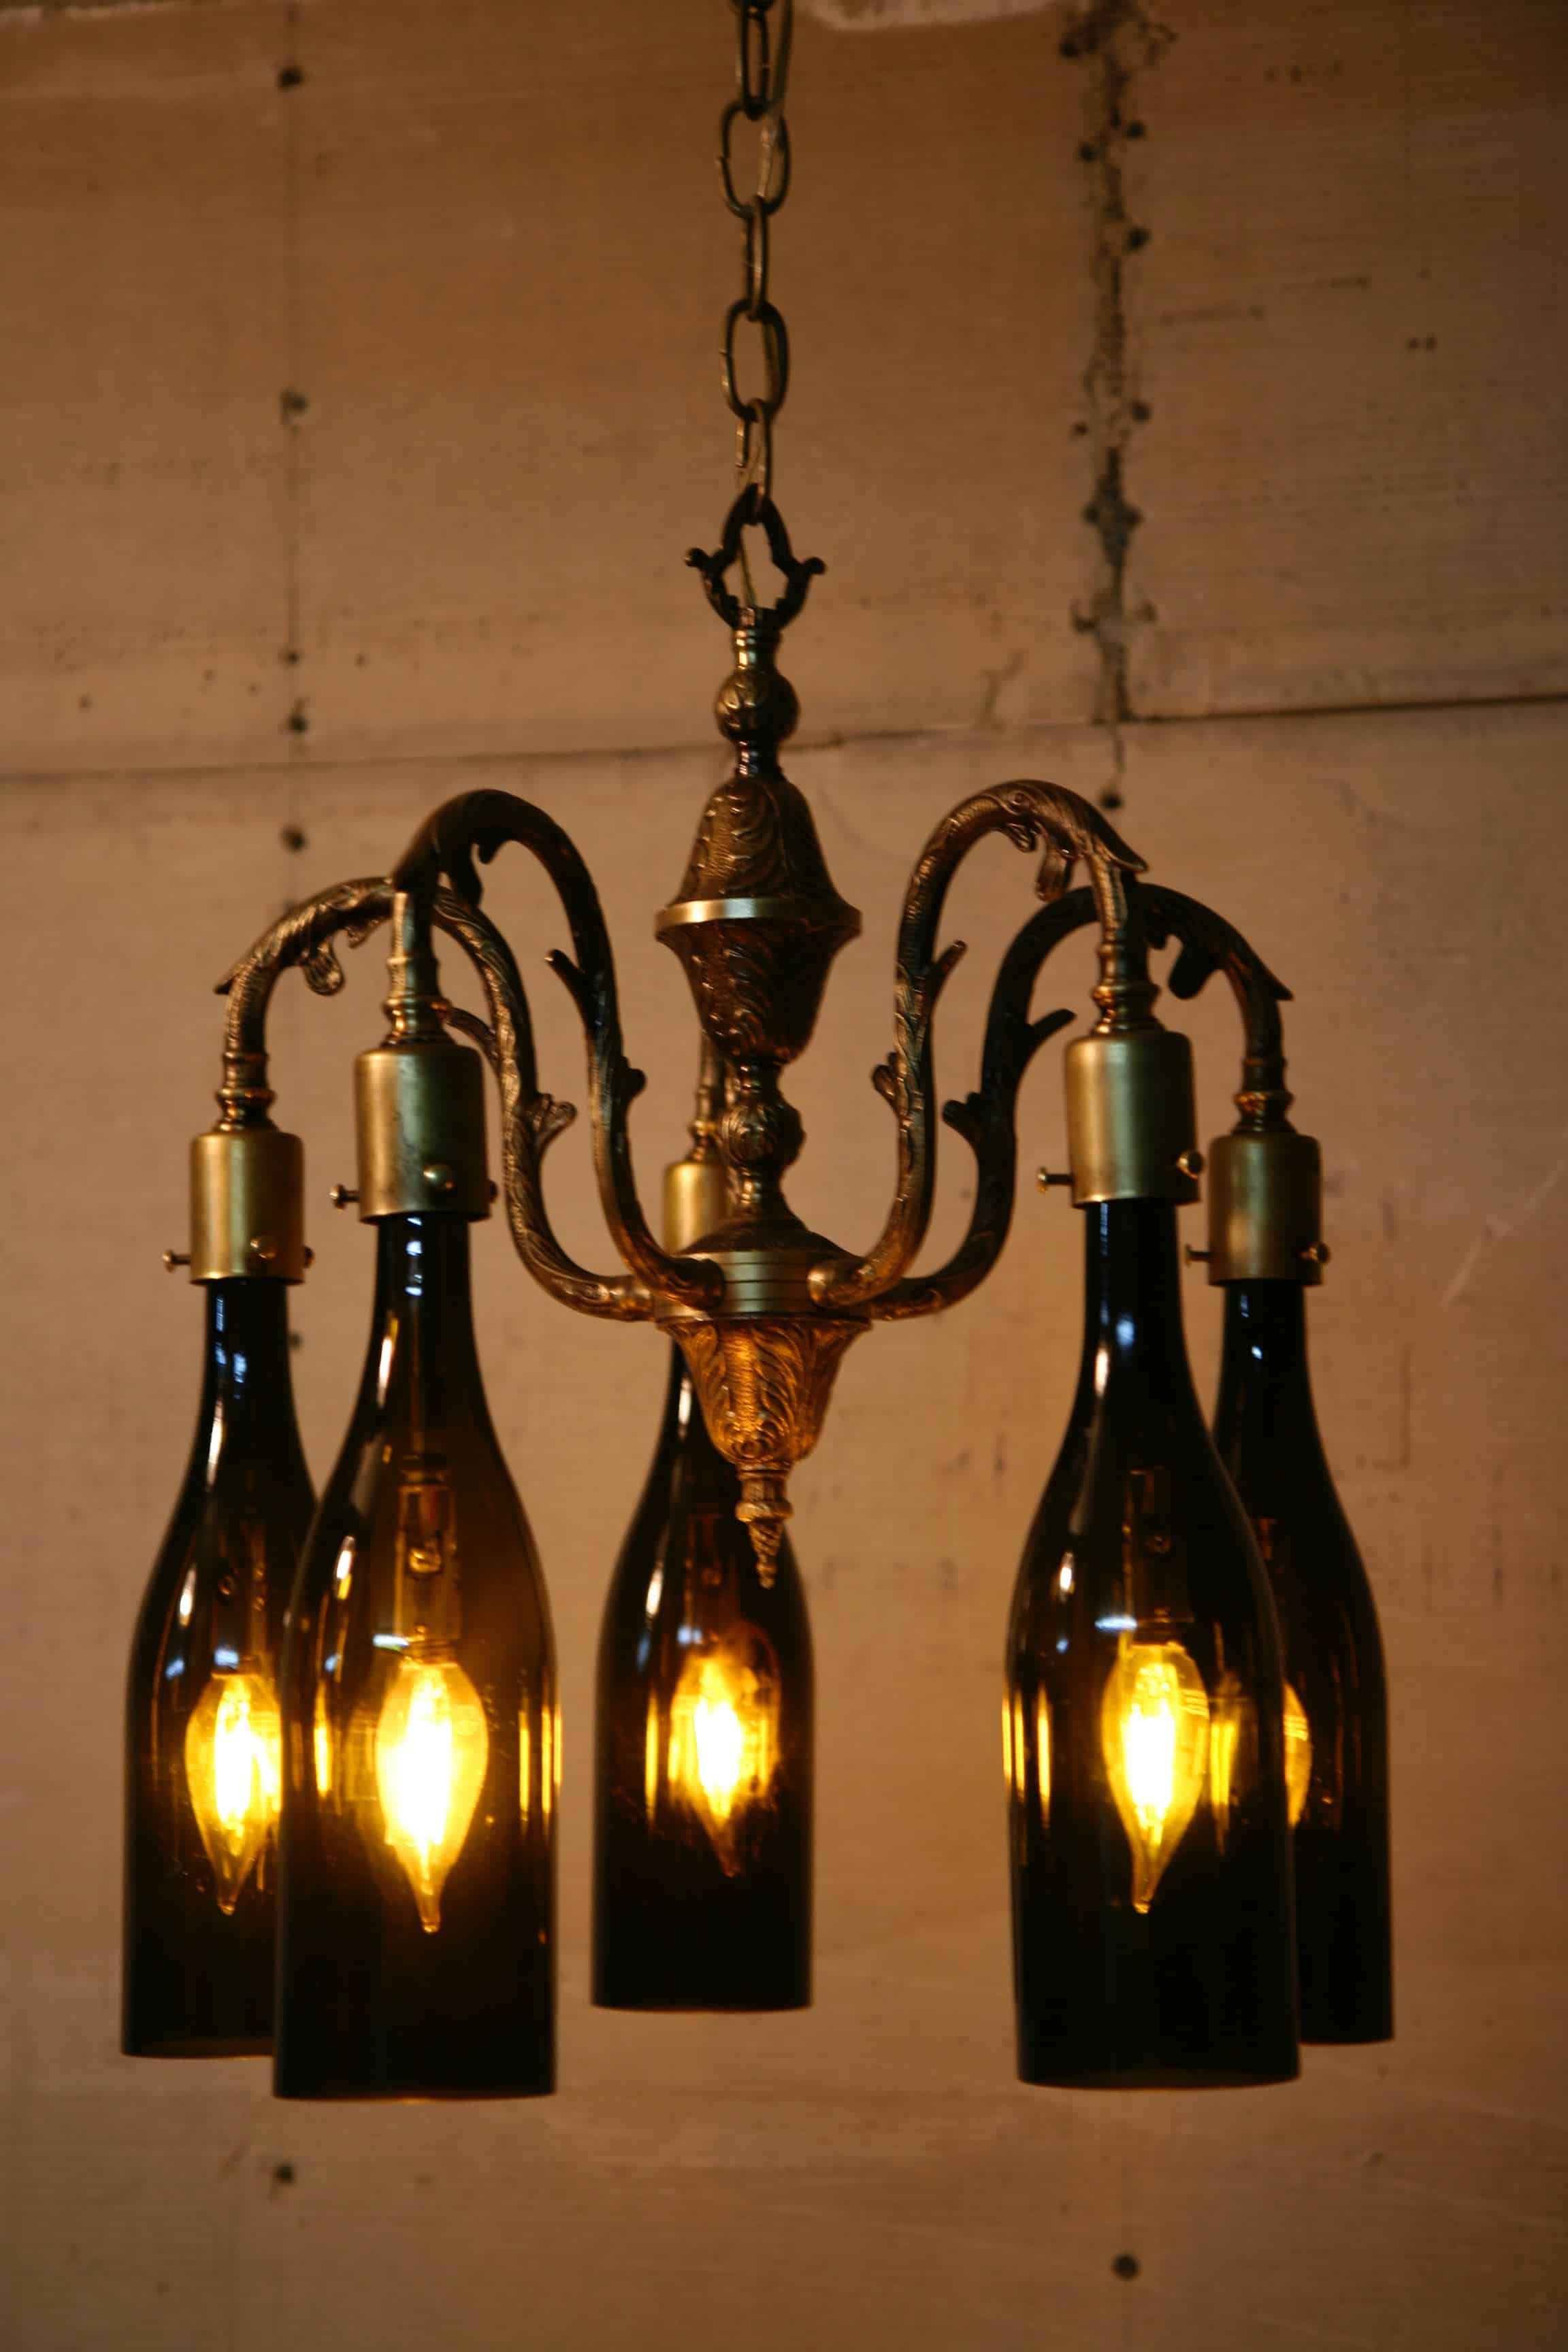 Recycled Antique Chandelier Using Wine Bottles As Globes • Recyclart